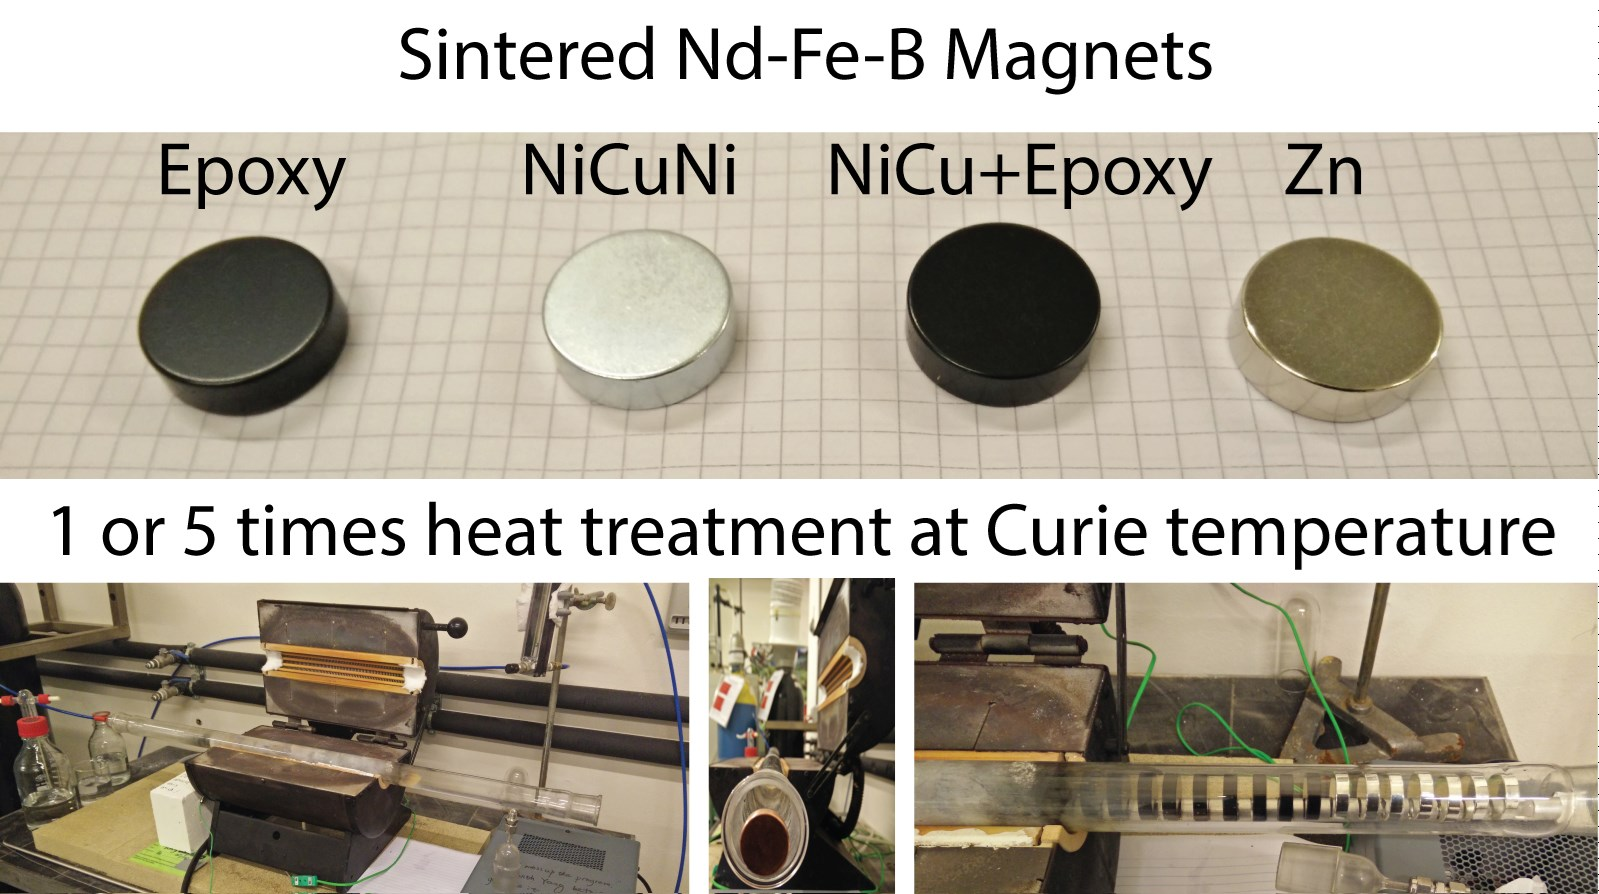 Coating integrity and magnetic performance of reused magnets